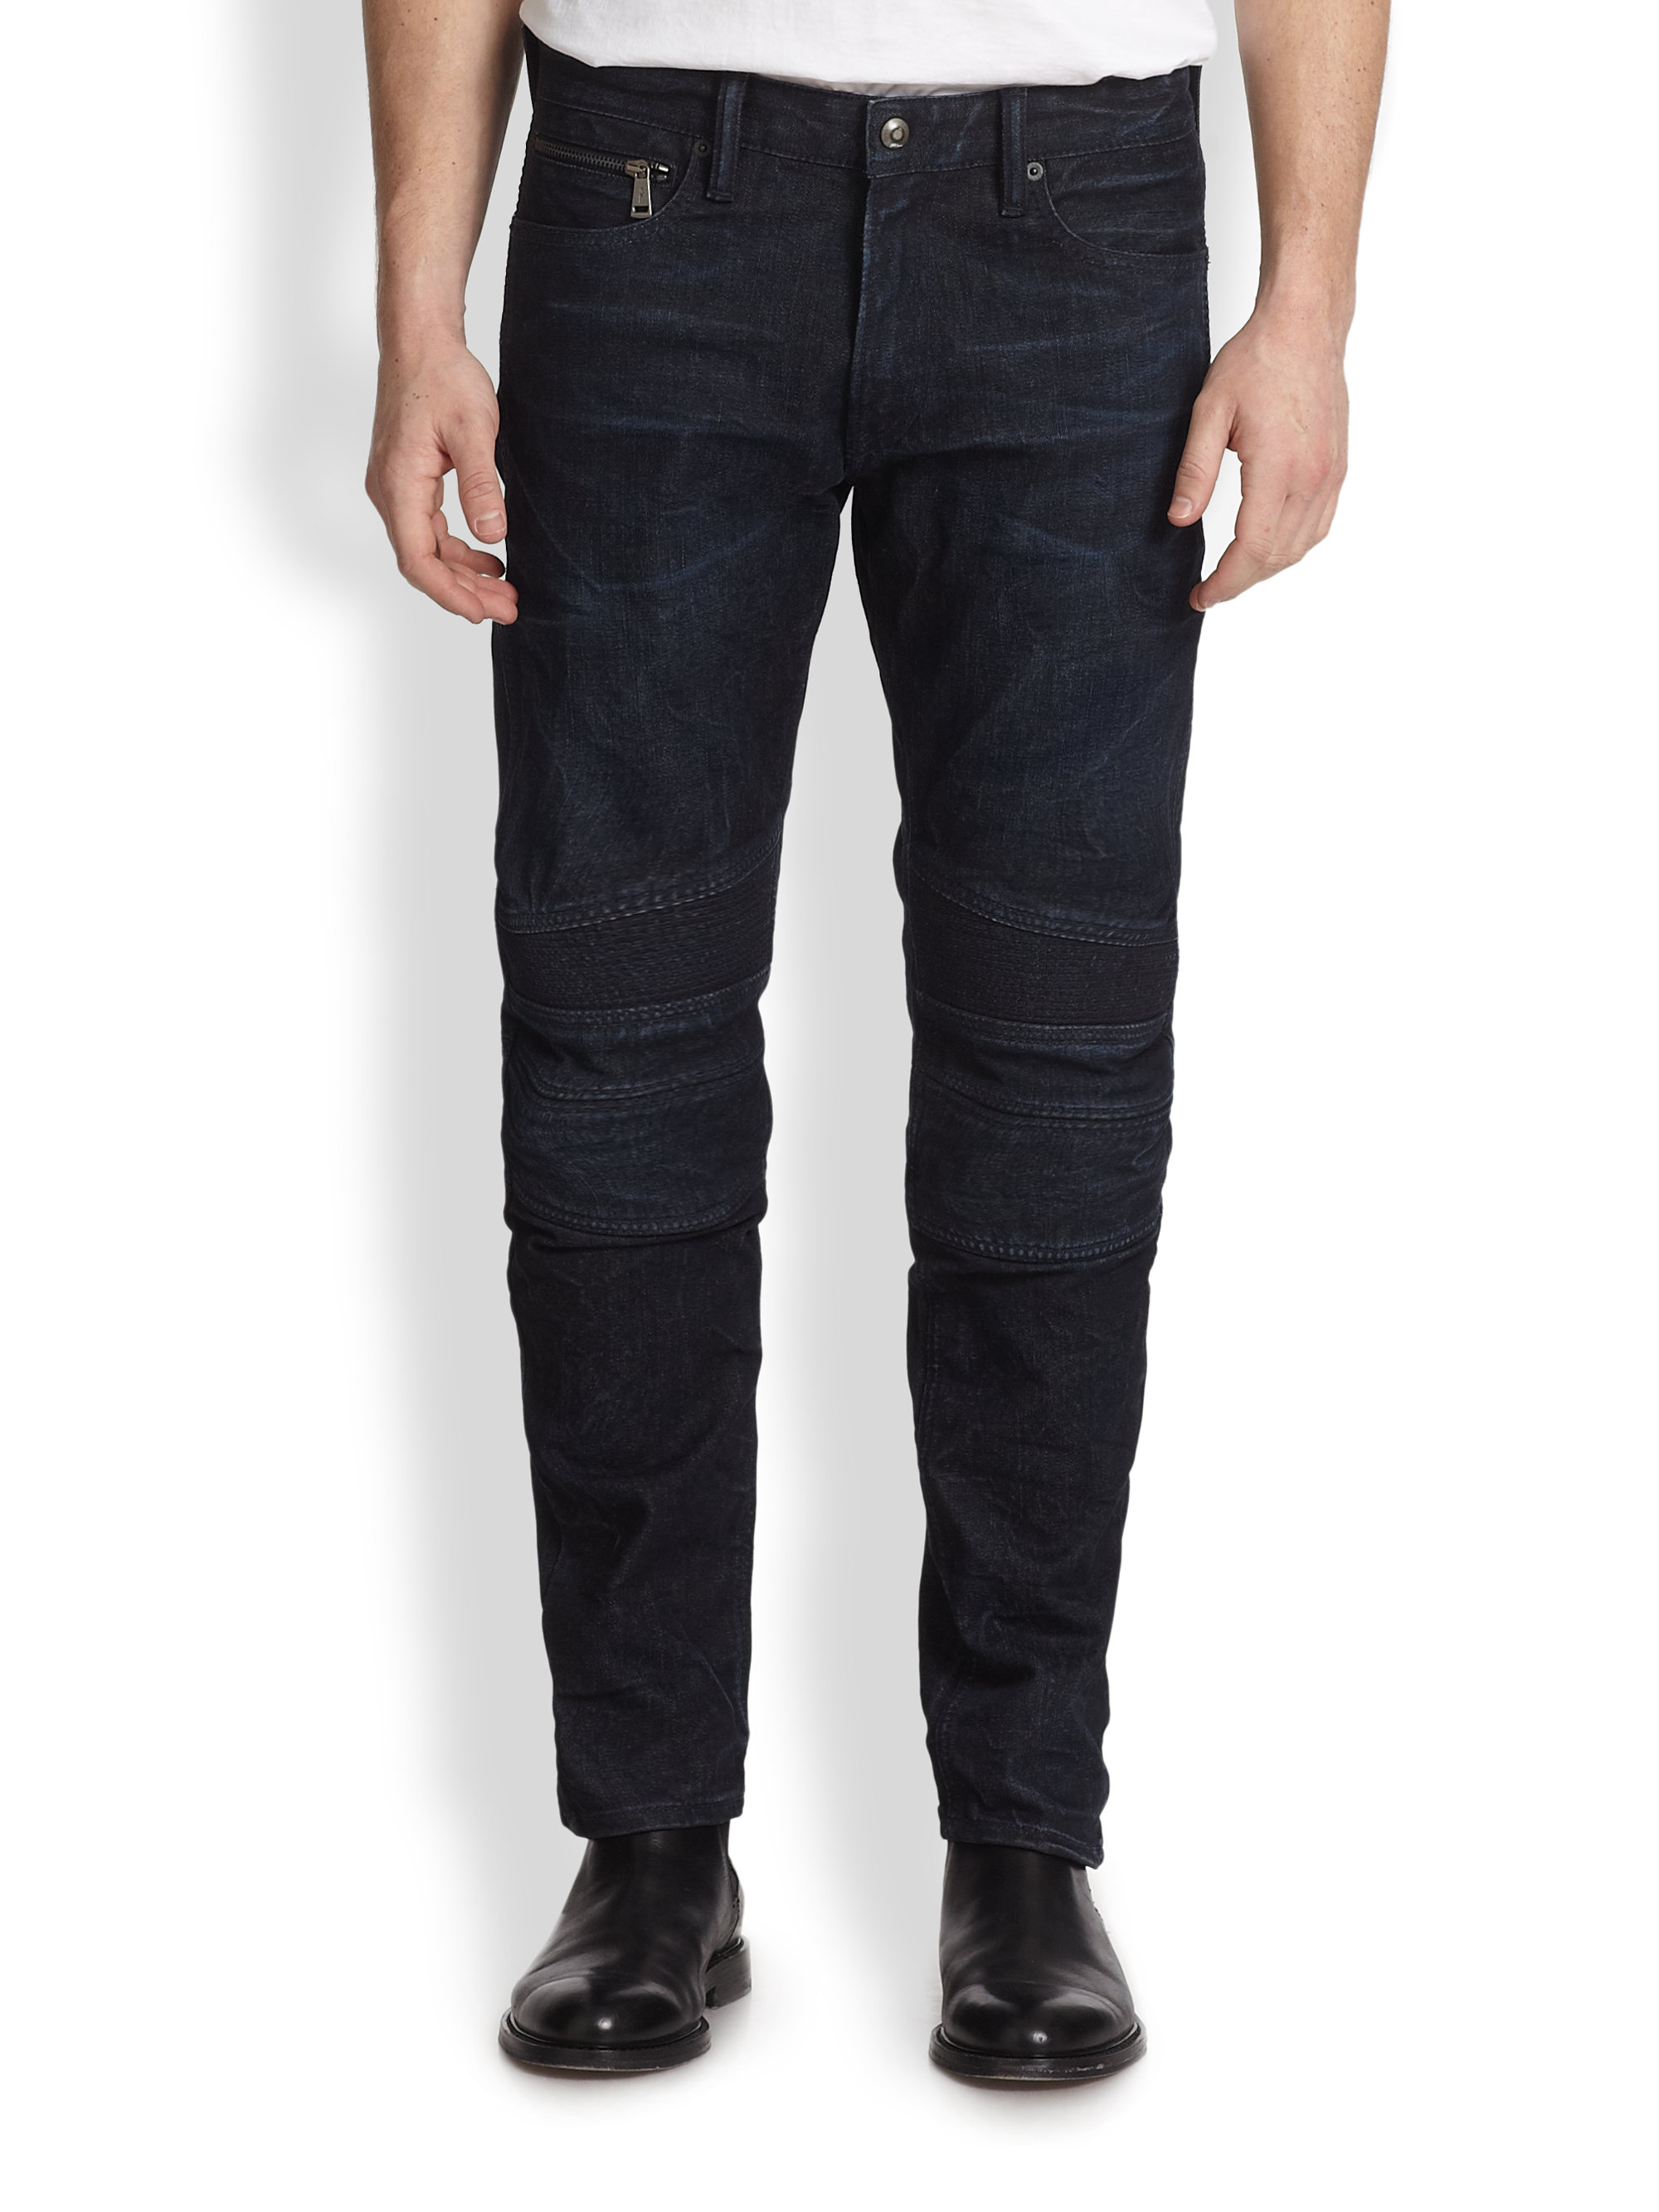 ralph lauren black label piston moto stretch jeans in blue for men lyst. Black Bedroom Furniture Sets. Home Design Ideas